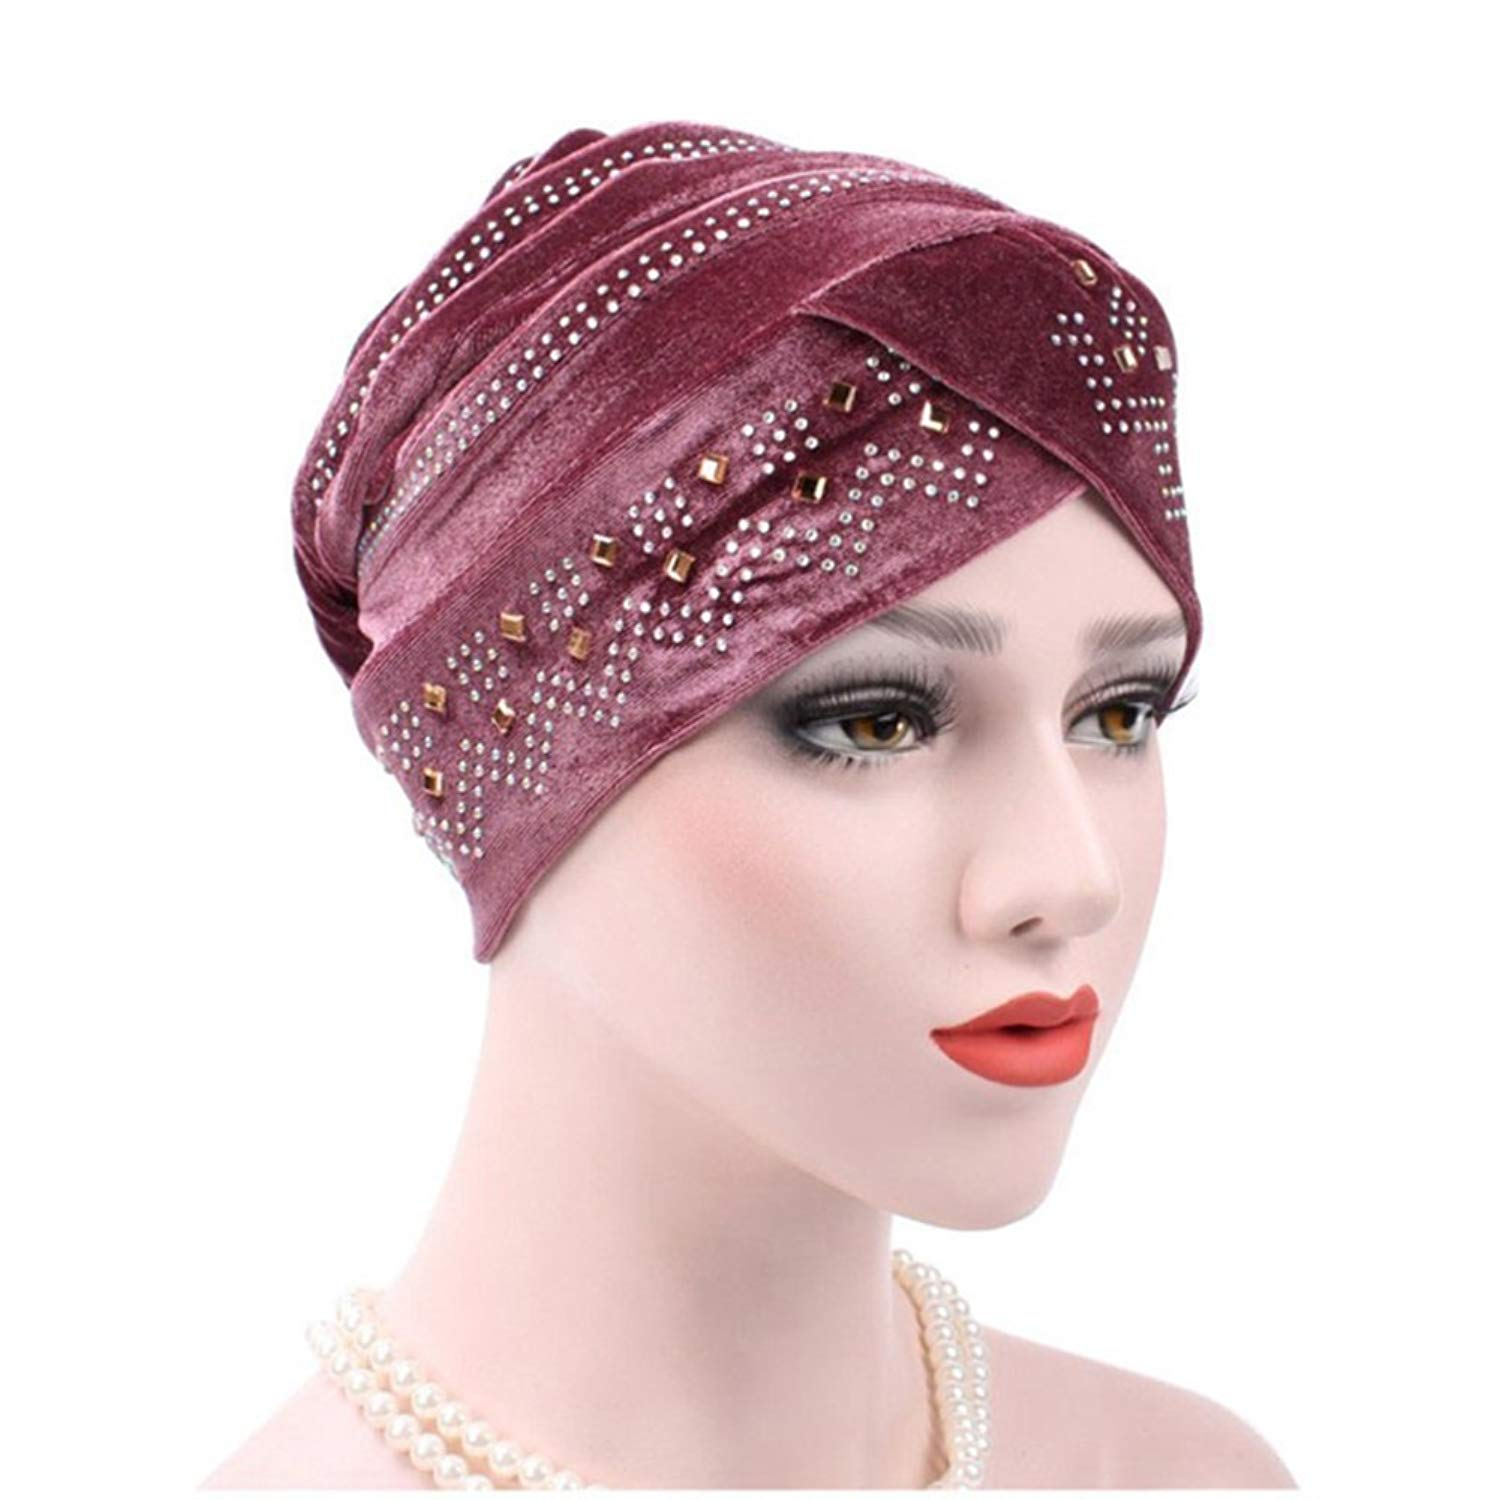 Cheap Bonnet Hijab Cap Find Deals On Line At Headpiece Get Quotations Zhengpin Women Underscarf Muslim Full Cover With Diamond